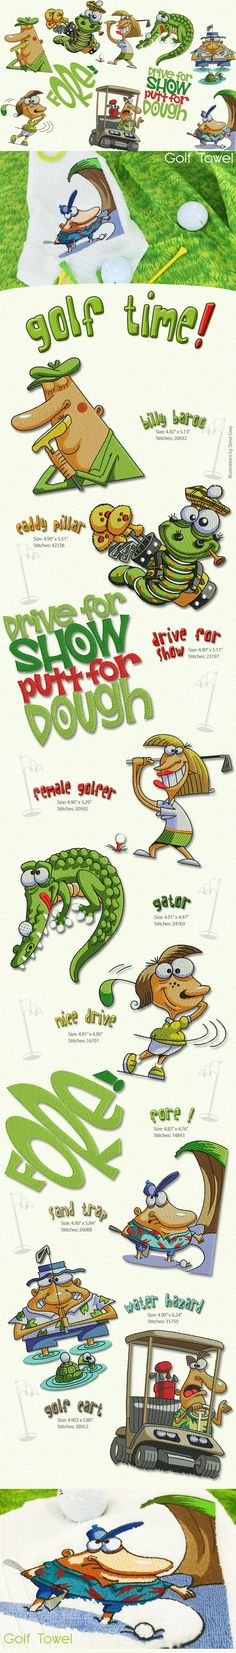 CoolDesigns from Steve Gray.Add them to golf bags, towels, shirts and much more.....  Golf is a game in which you claim the privileges of age, and retain the playthings of childhood. Thread and Bobbins Available here!